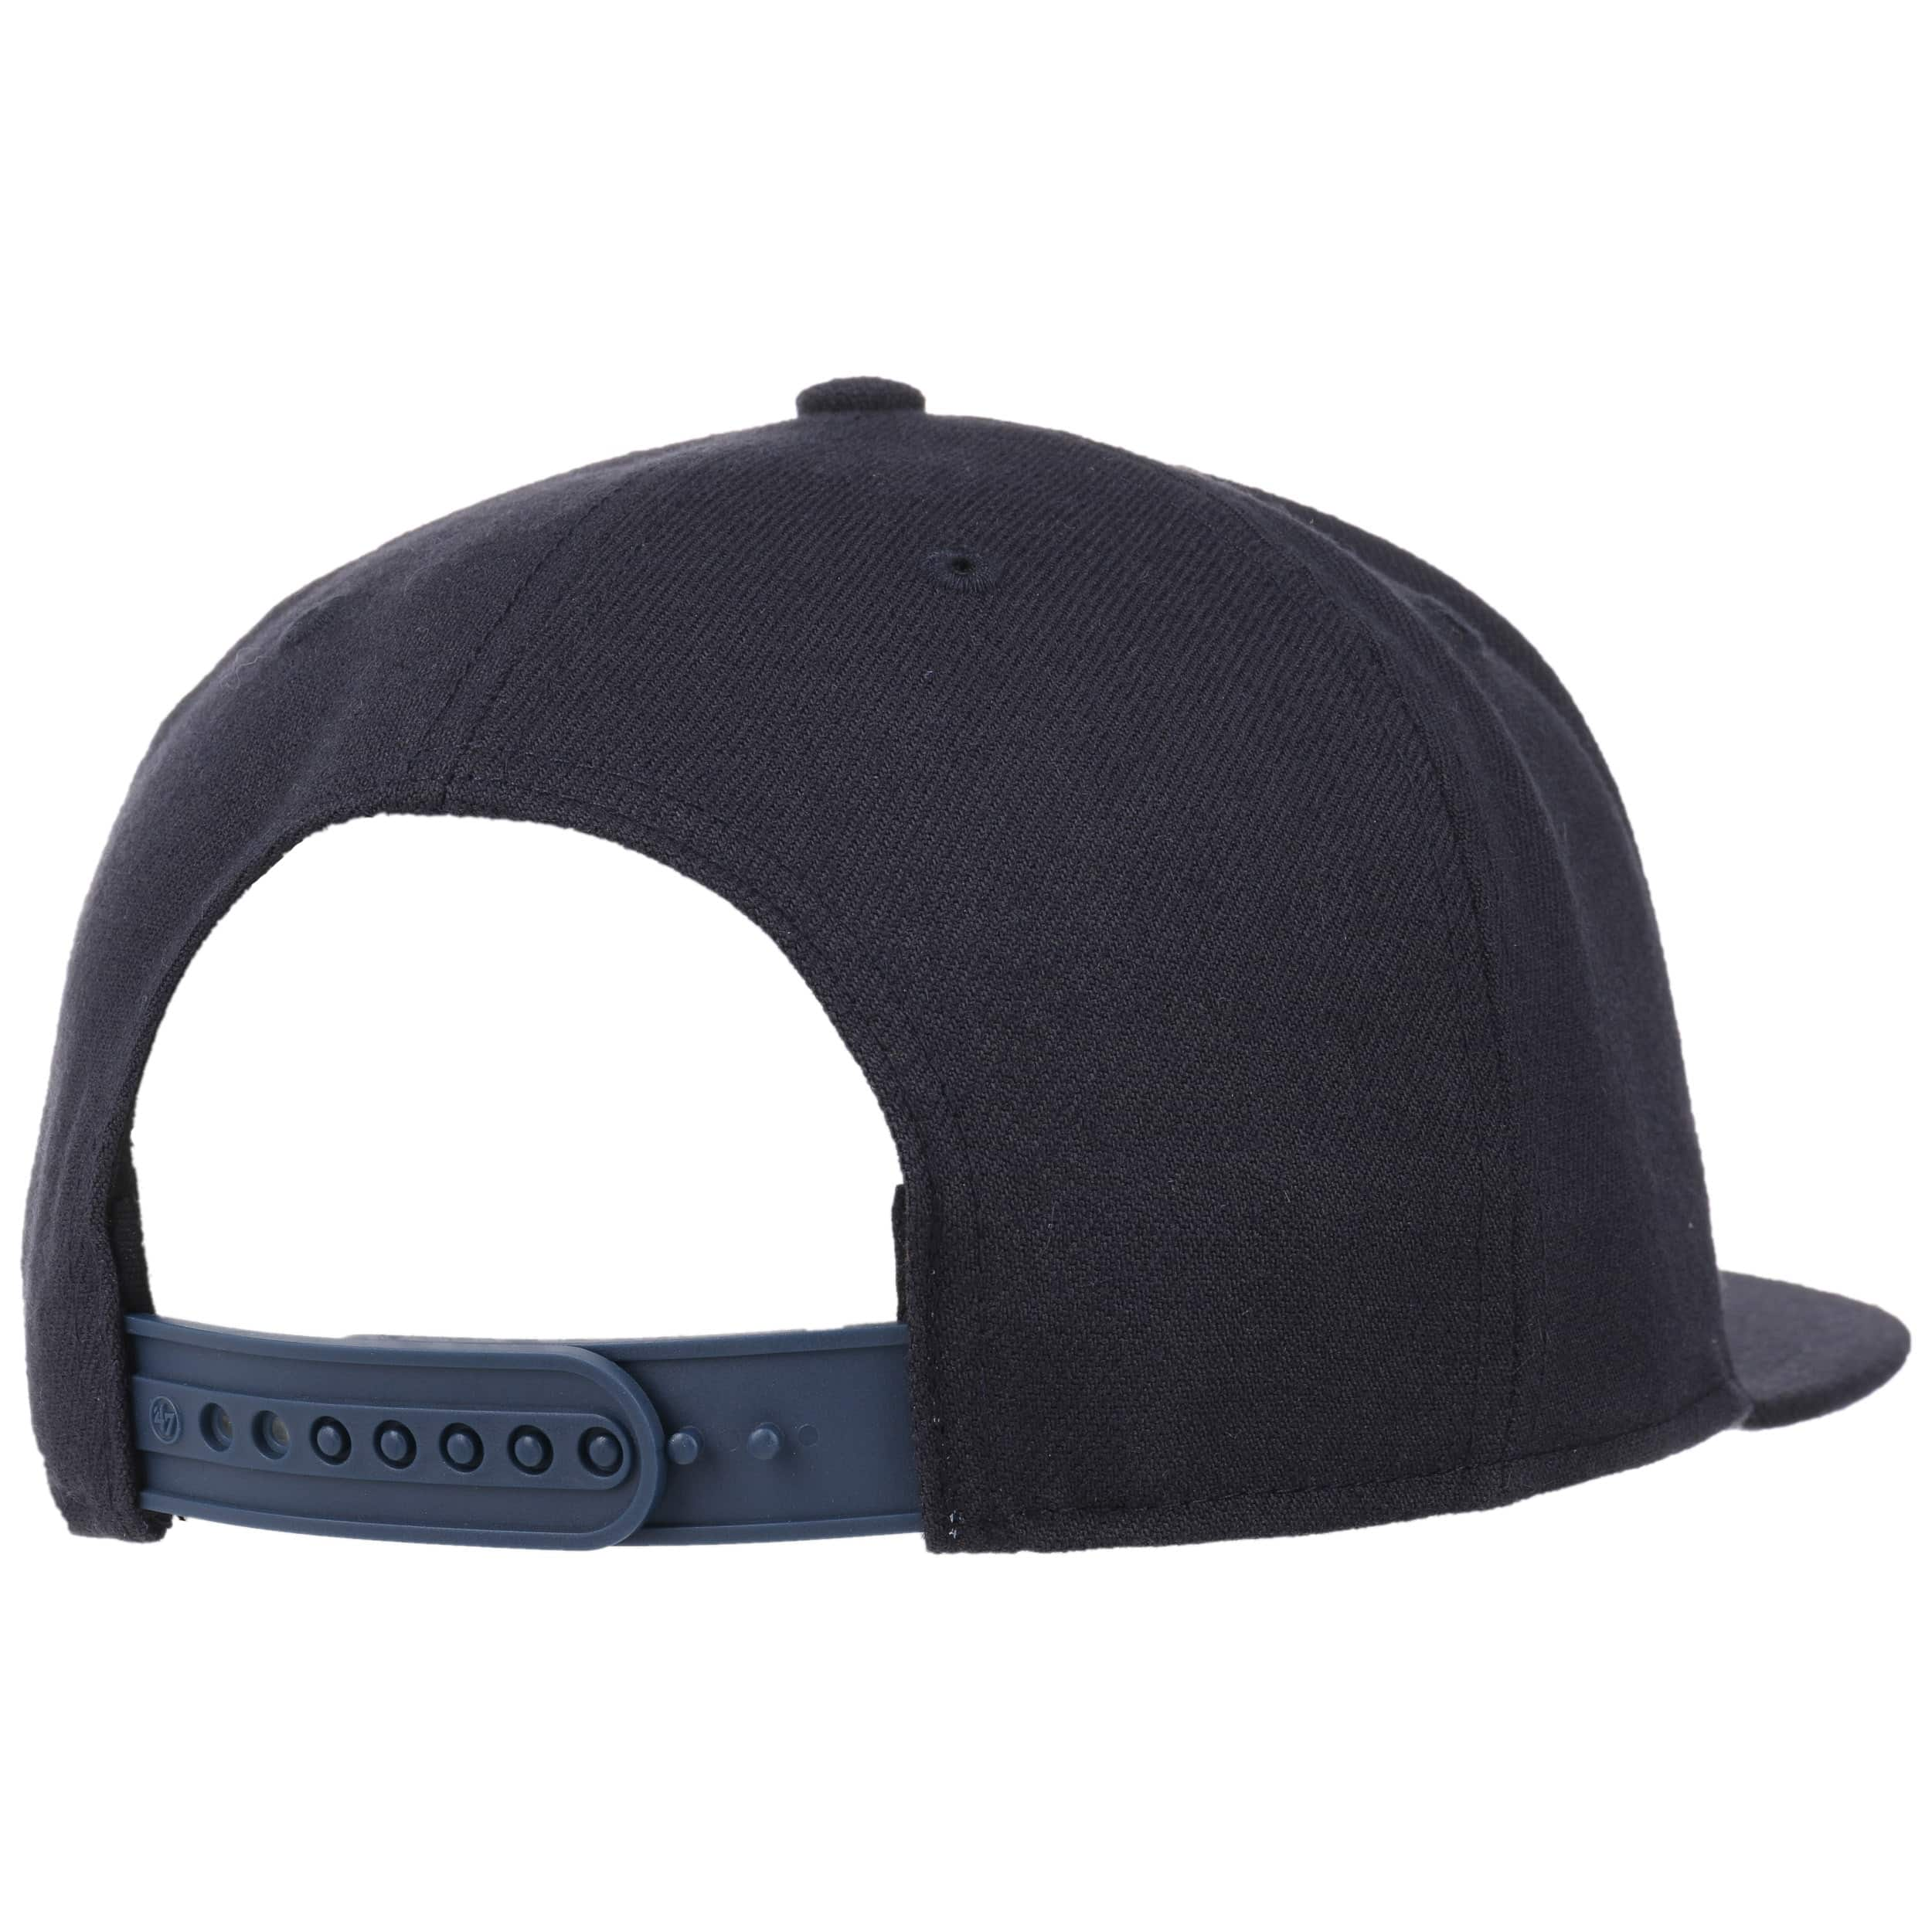 1e512248d03 ... NoShot Red Sox Snapback Cap by 47 Brand - navy 4 ...